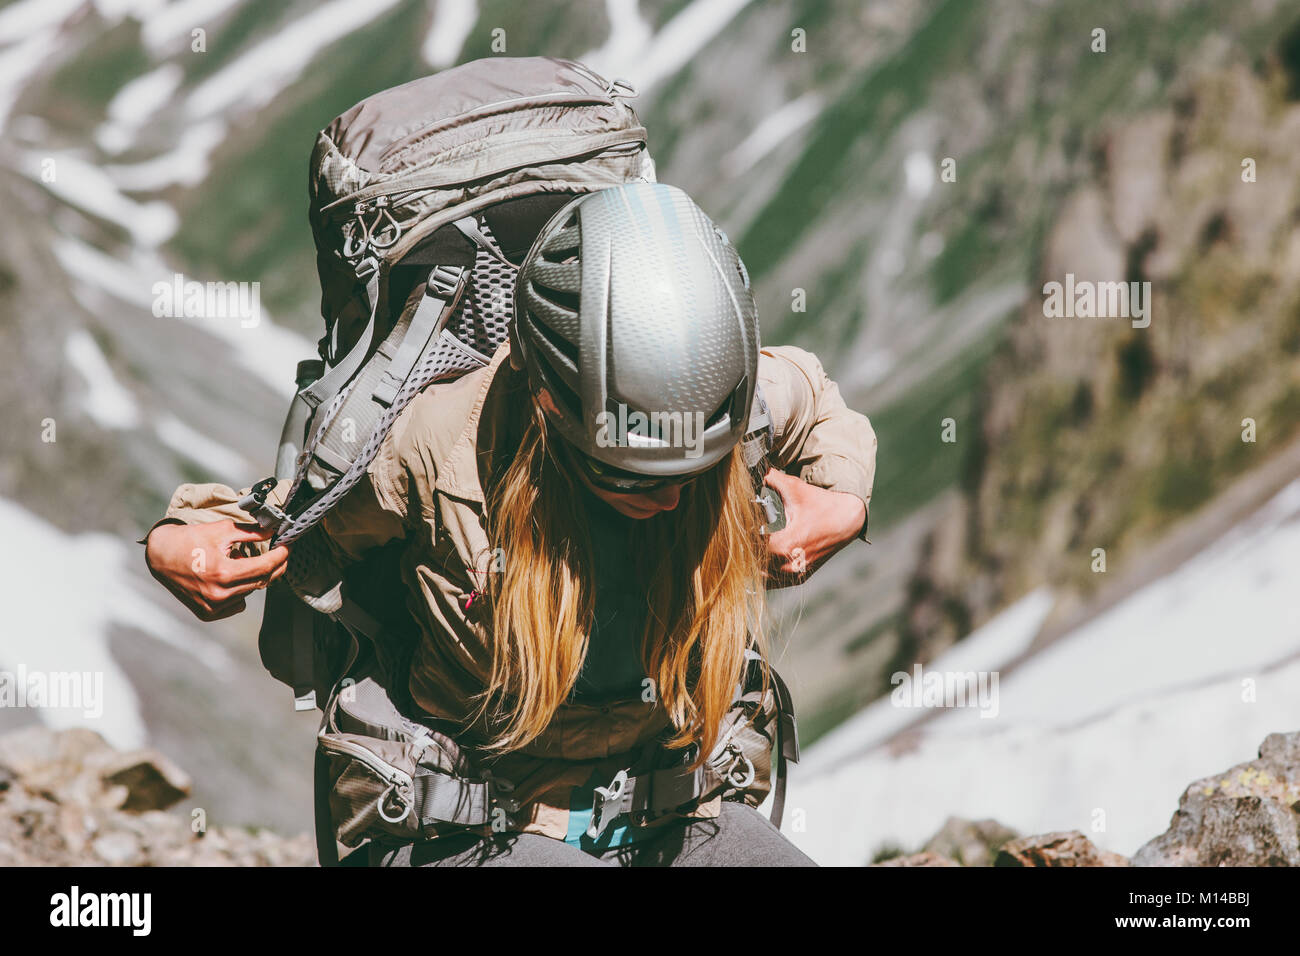 Woman with backpack hiking in mountains Travel healthy lifestyle adventure concept active summer vacations outdoor - Stock Image